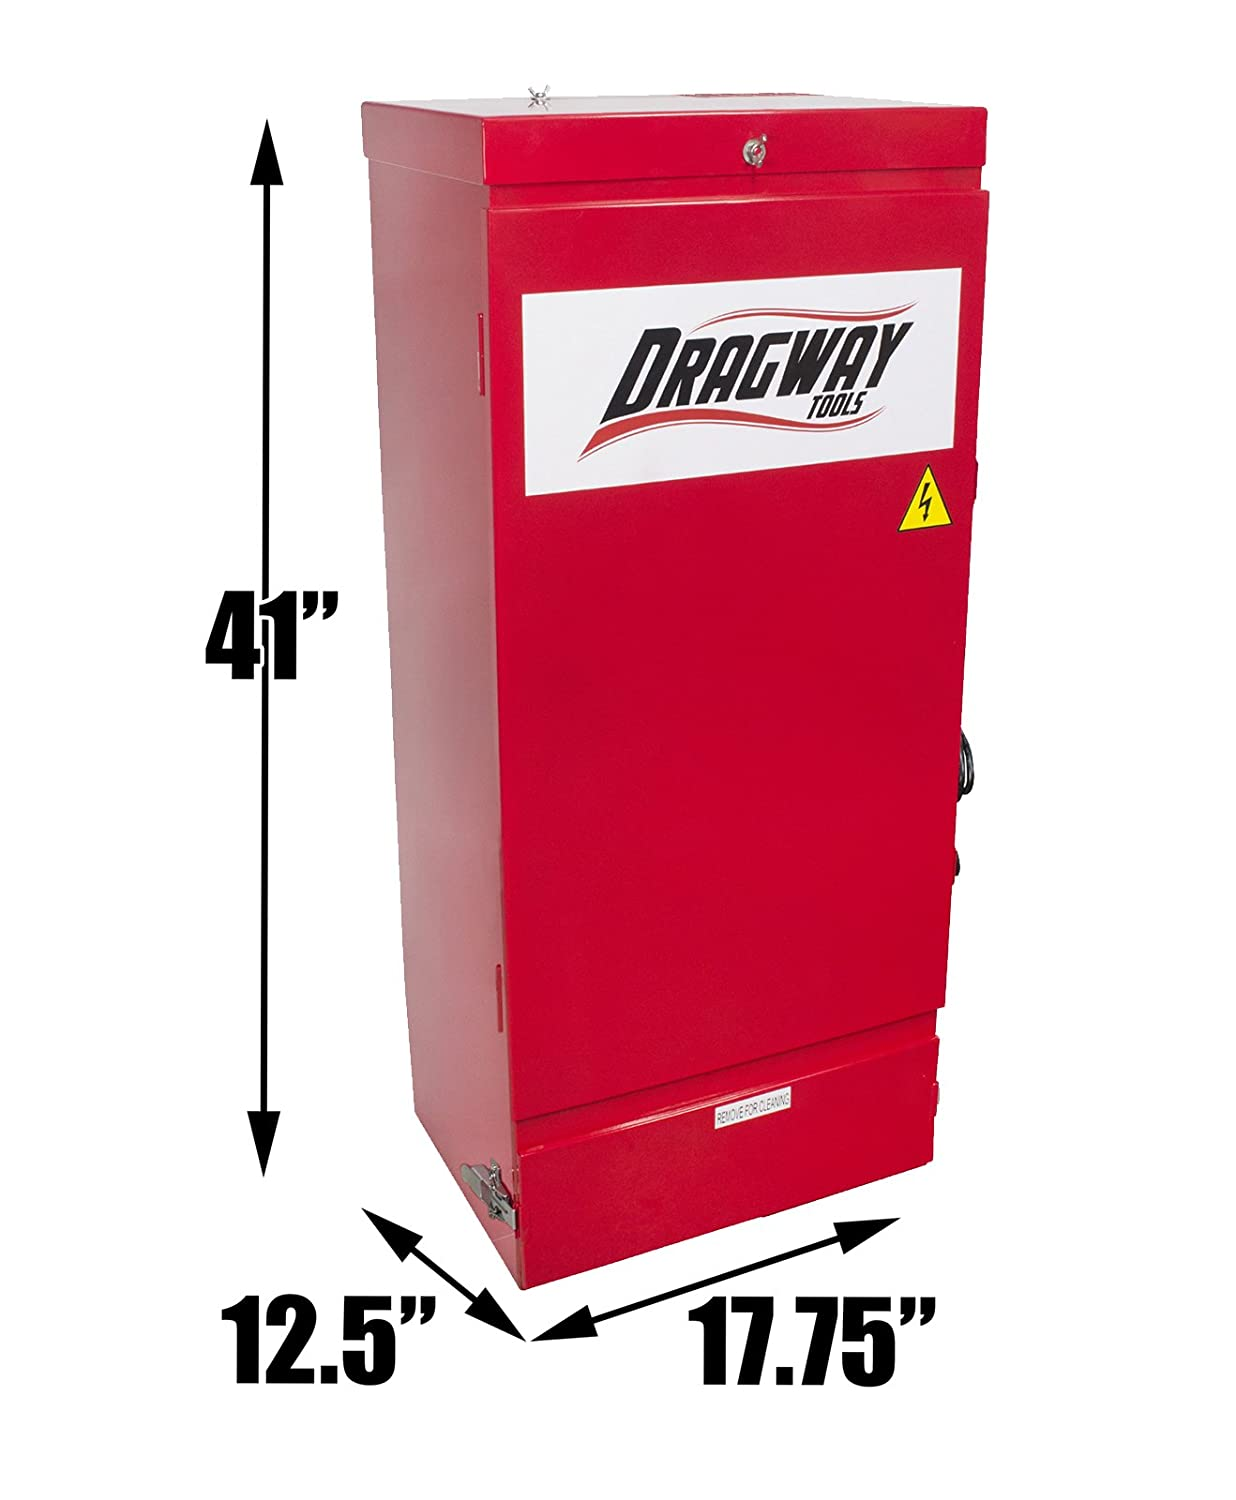 Dragway Tools Dust Collector for Model 60, 90, 110, 260